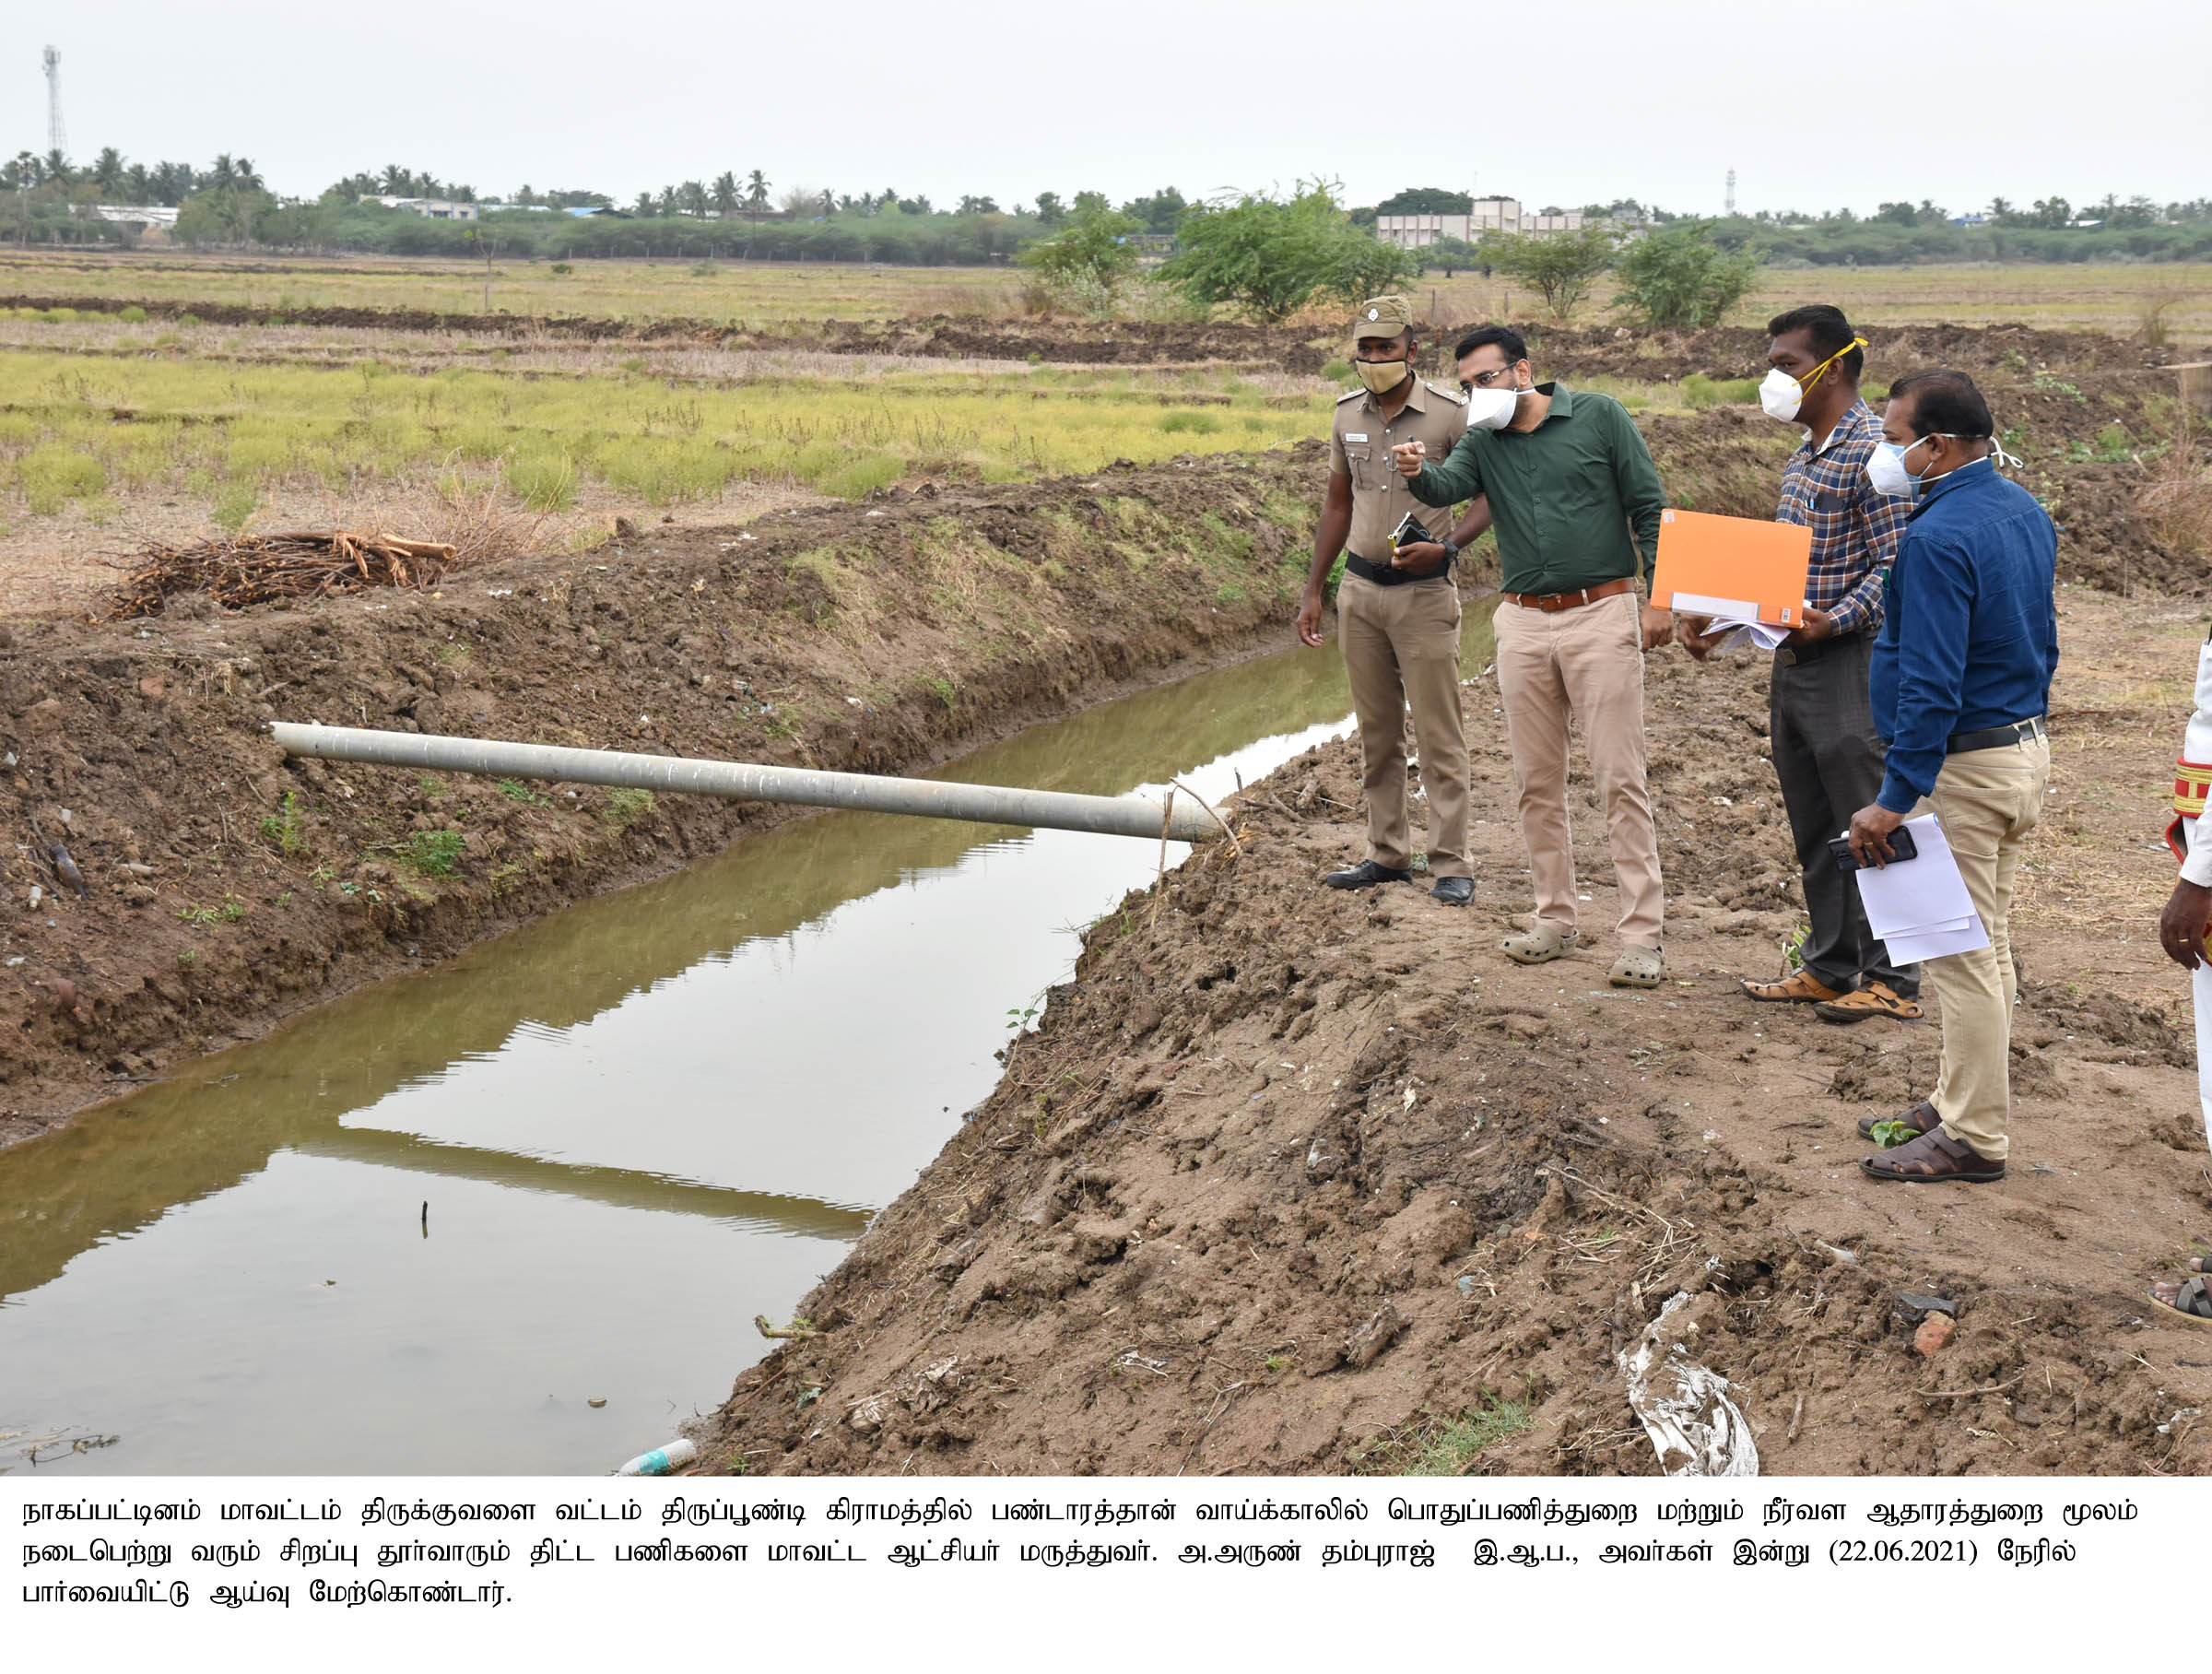 COLLECTOR- PWD DESELTING INSPECTION- 22.06.2021 NEWS & PHOTOS